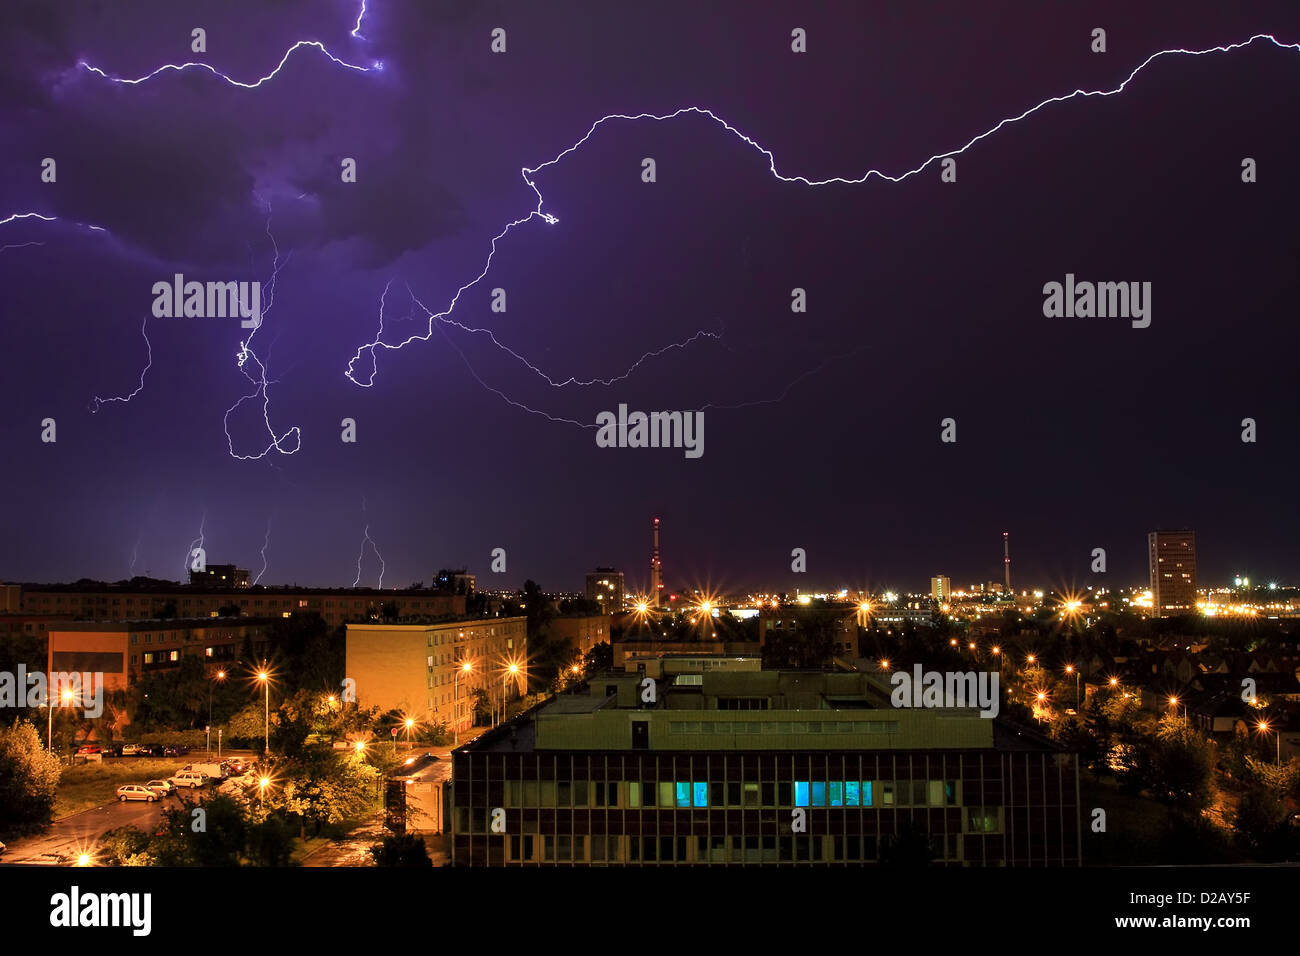 Lightning during thunderstorm over the city of Prague, Czech Republic (long exposure). Stock Photo